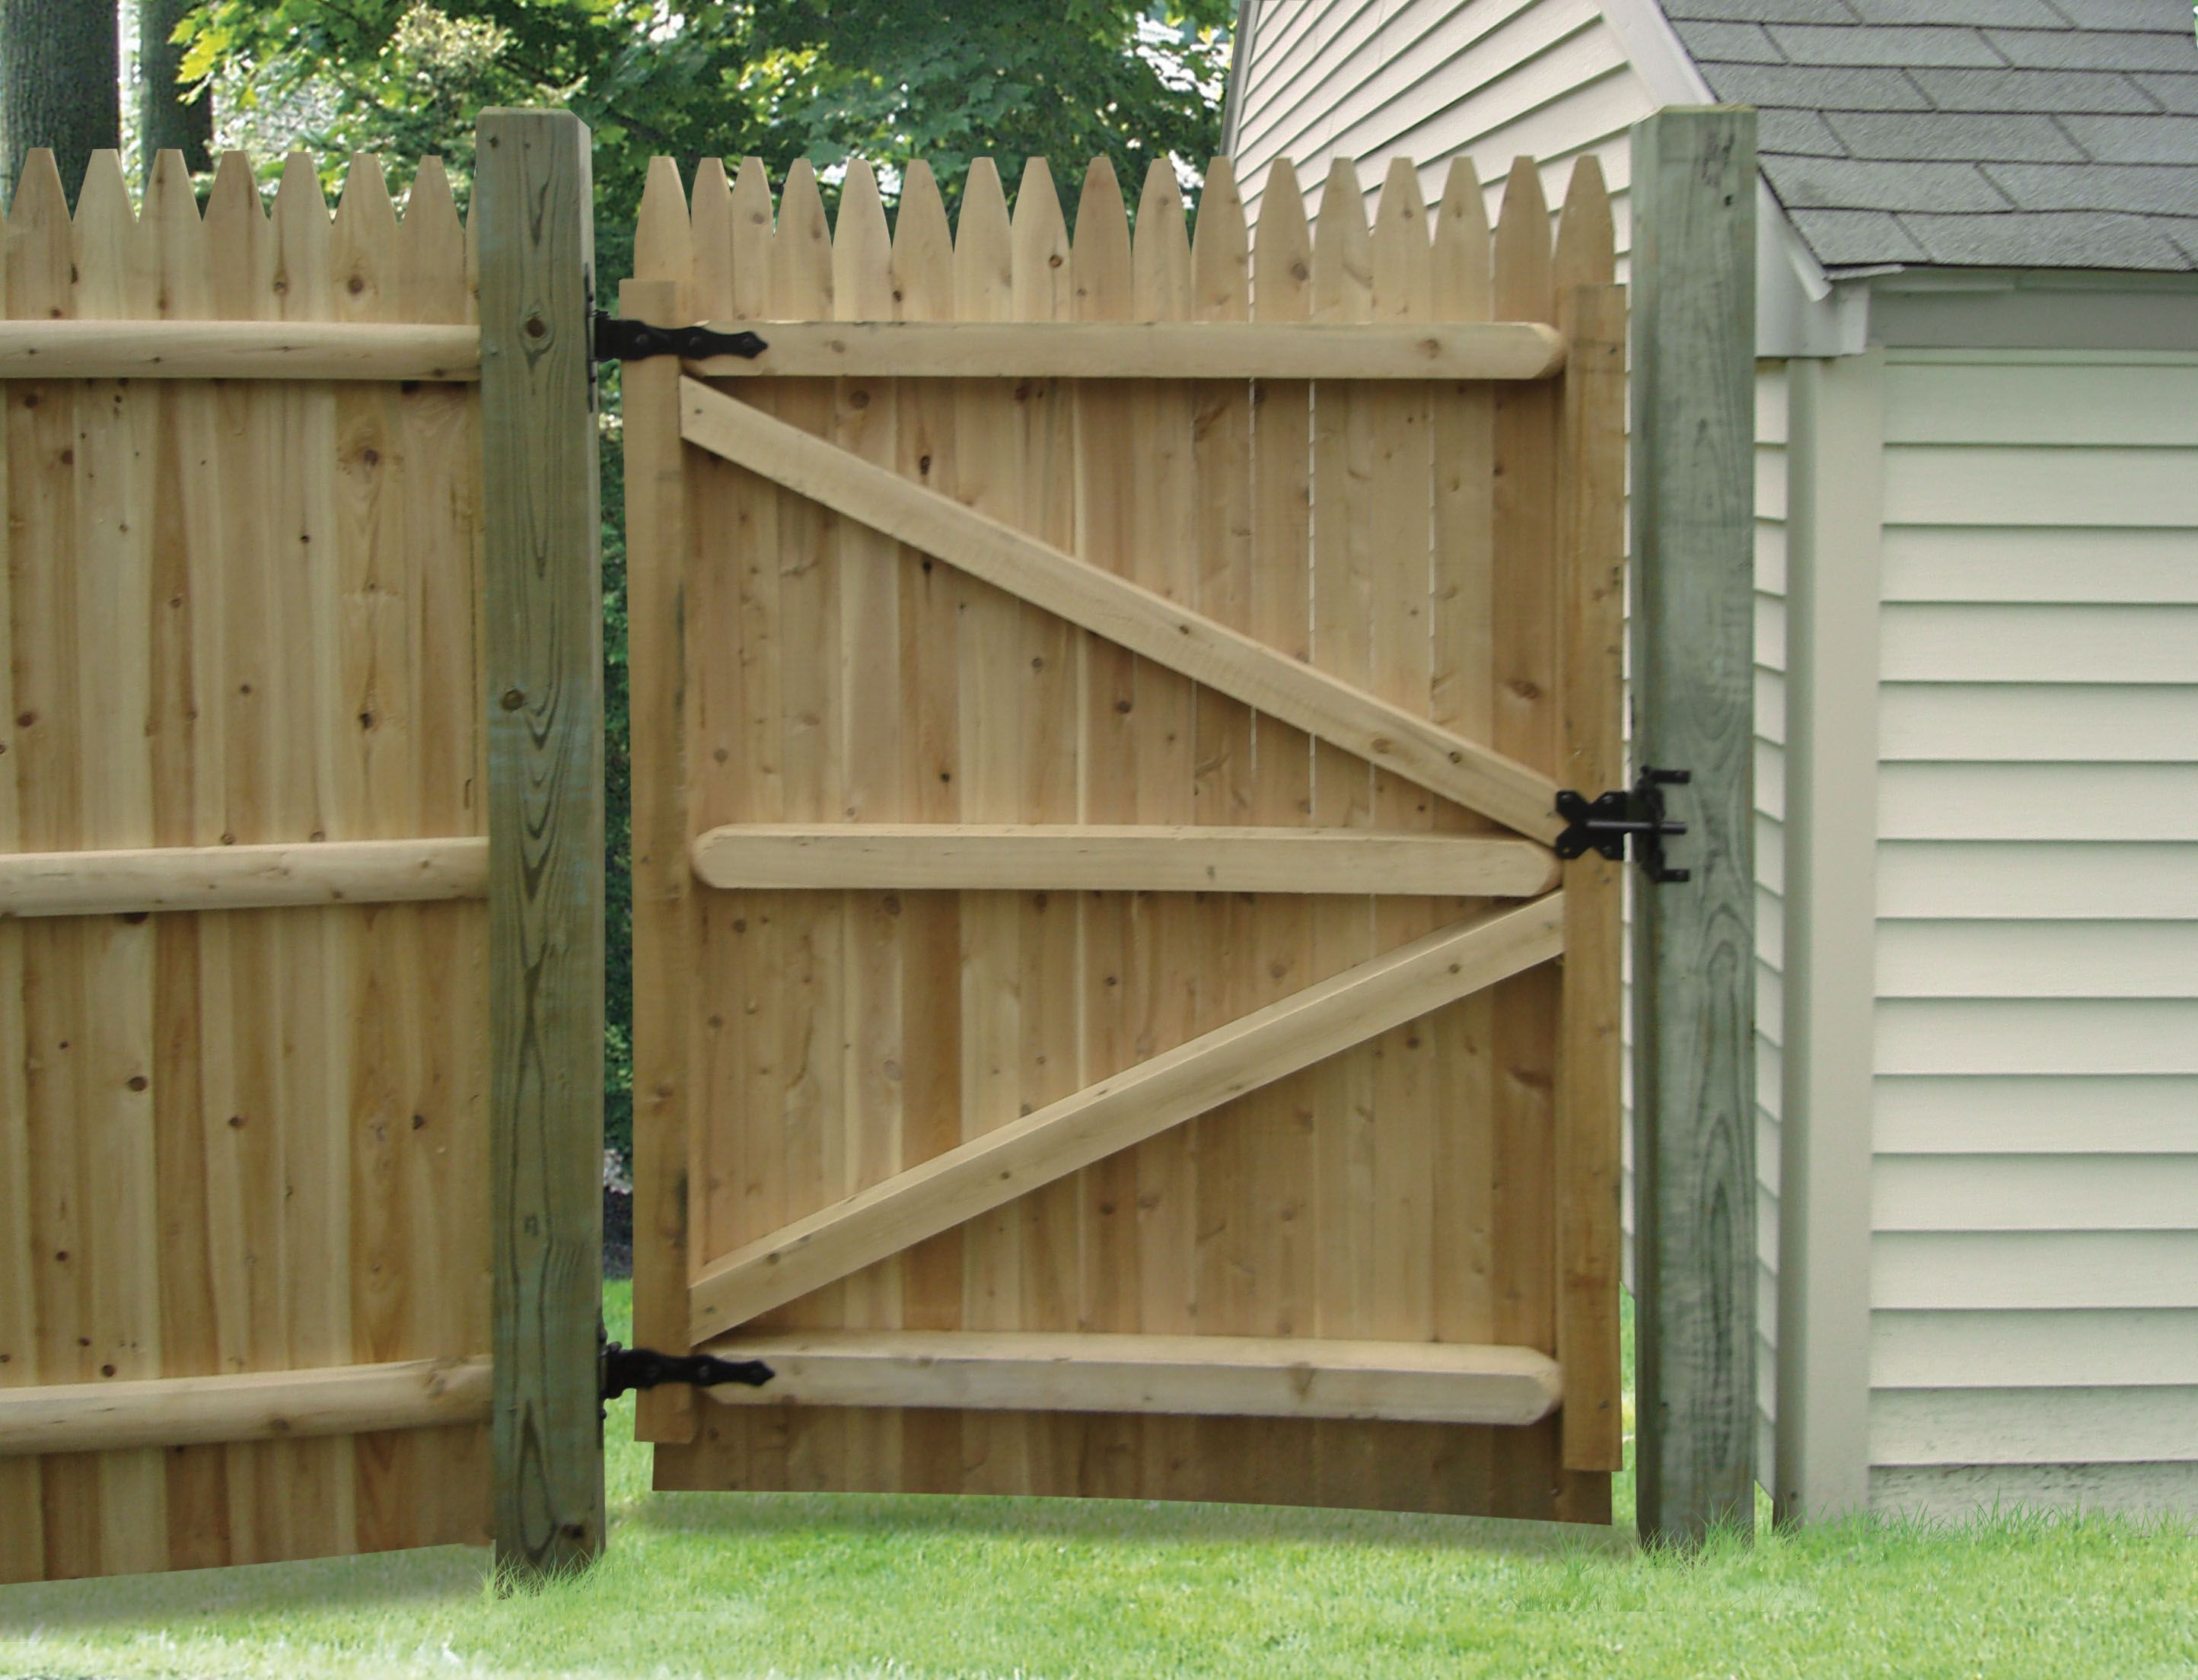 Remote Control Fence Gate Openers Fence Gate Design Wood Fence